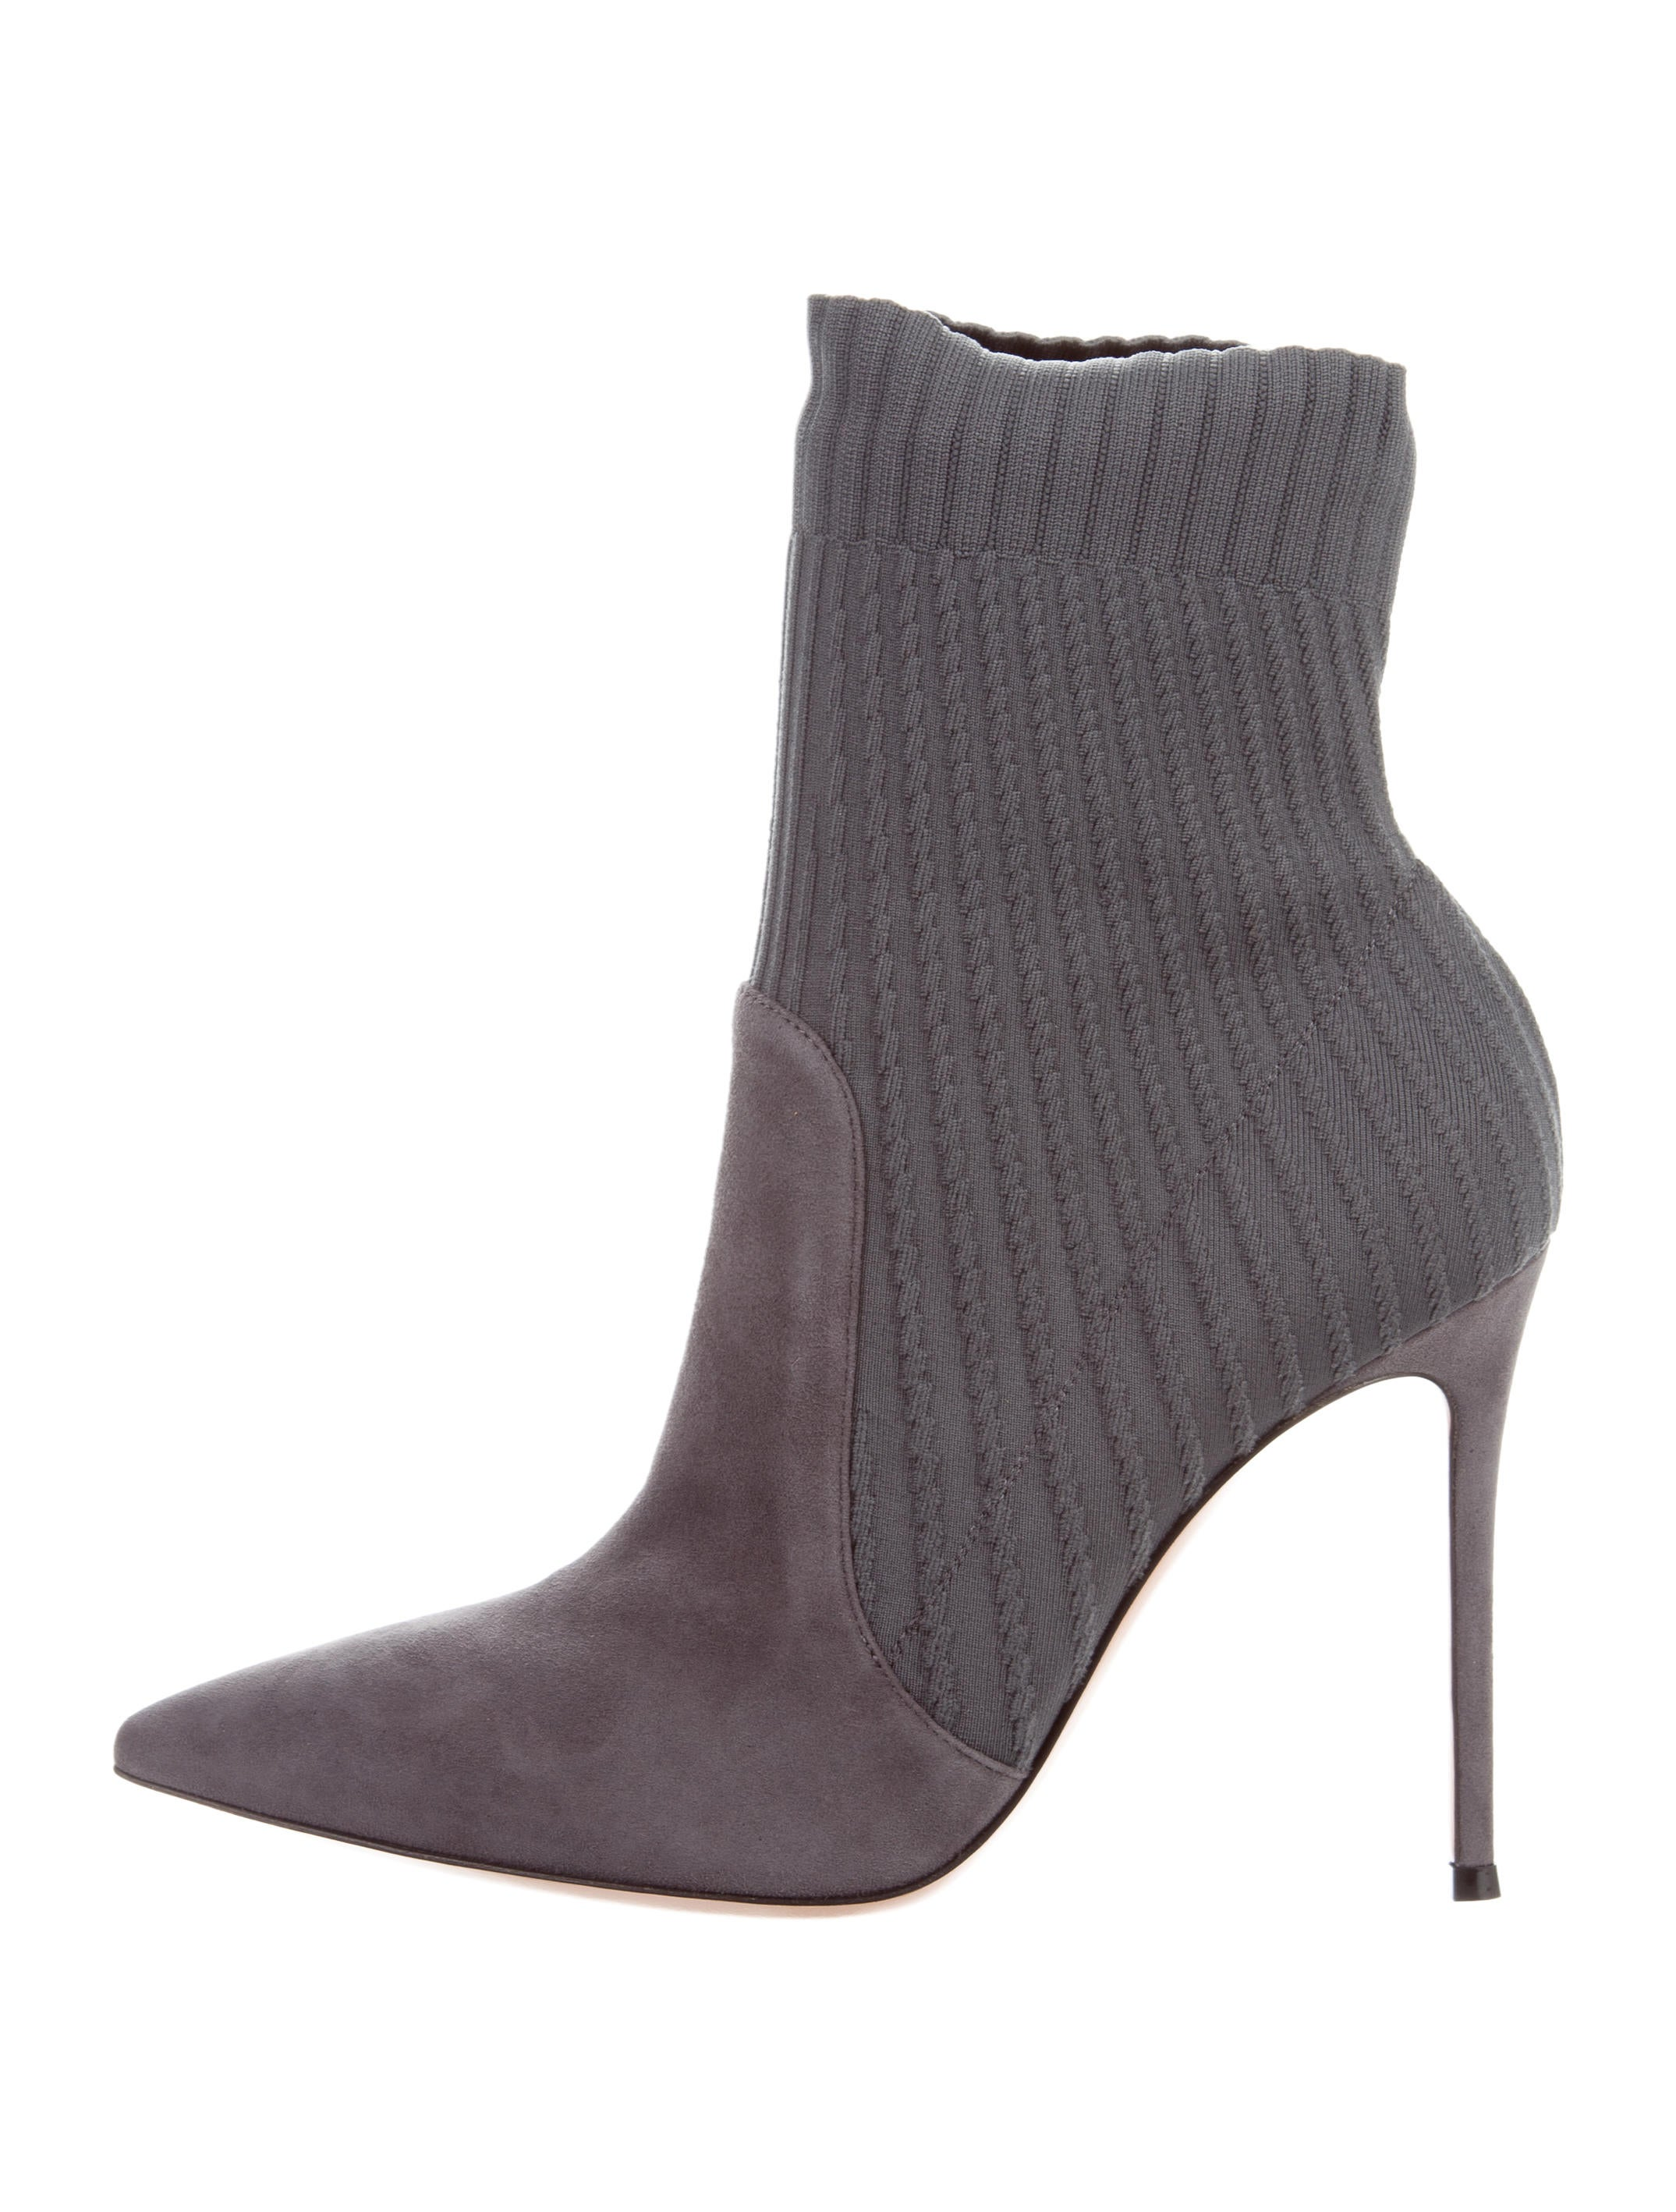 Gianvito Rossi Katie Pointed-Toe Ankle Boots w/ Tags sale official site Ox8CEUtC